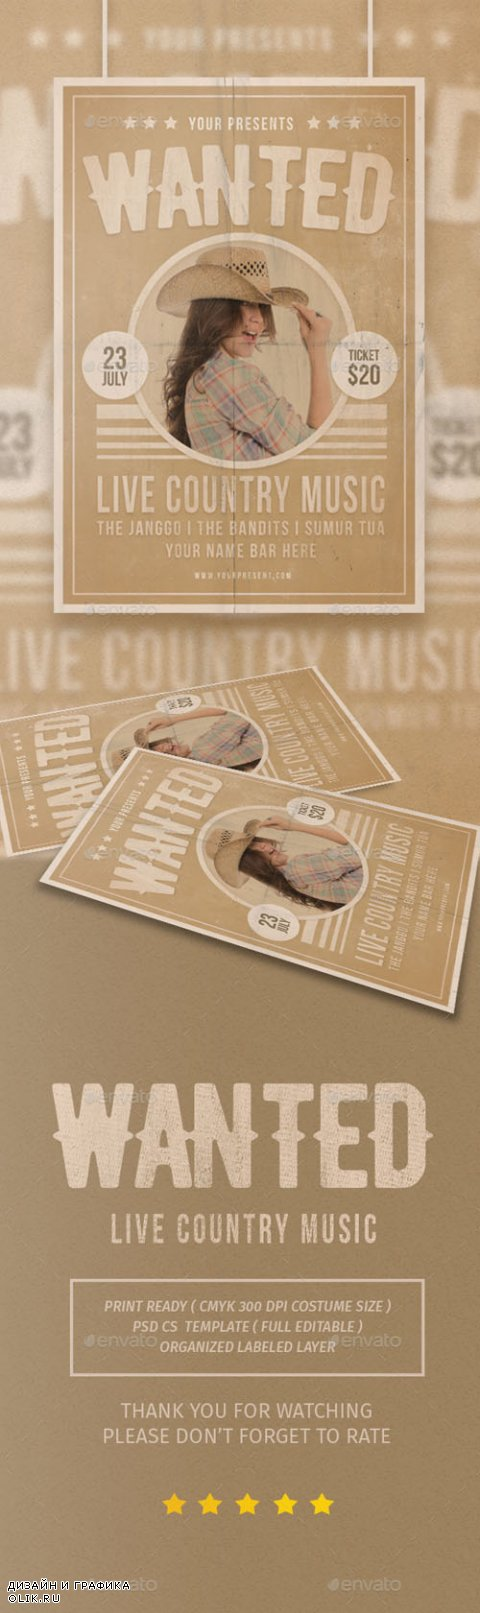 Wanted Country Music Flyer 16516728